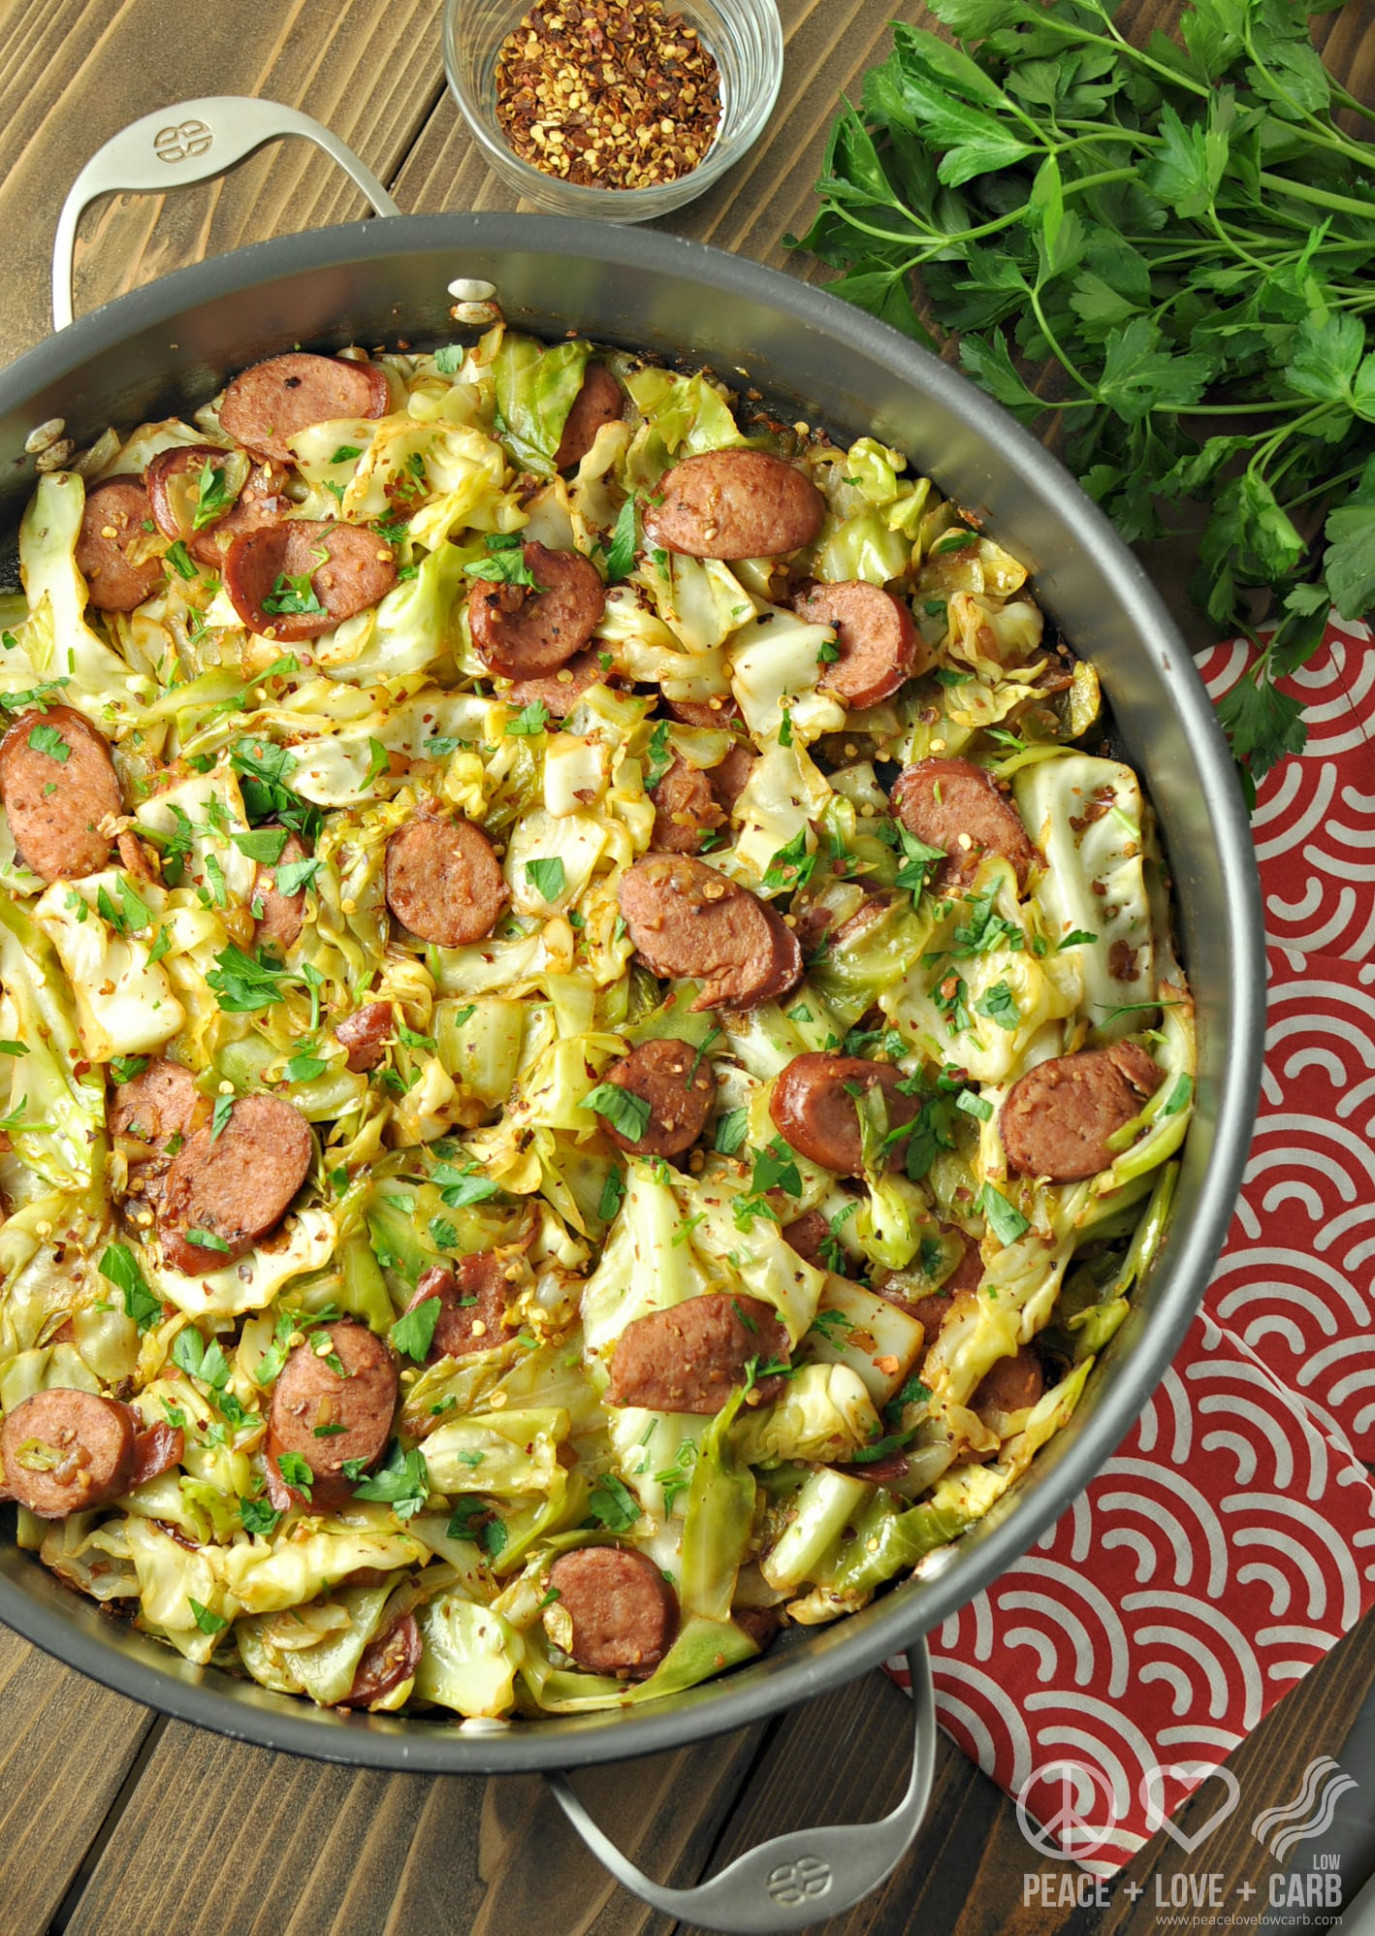 Fried Cabbage with Kielbasa - Low Carb, Paleo Gluten Free